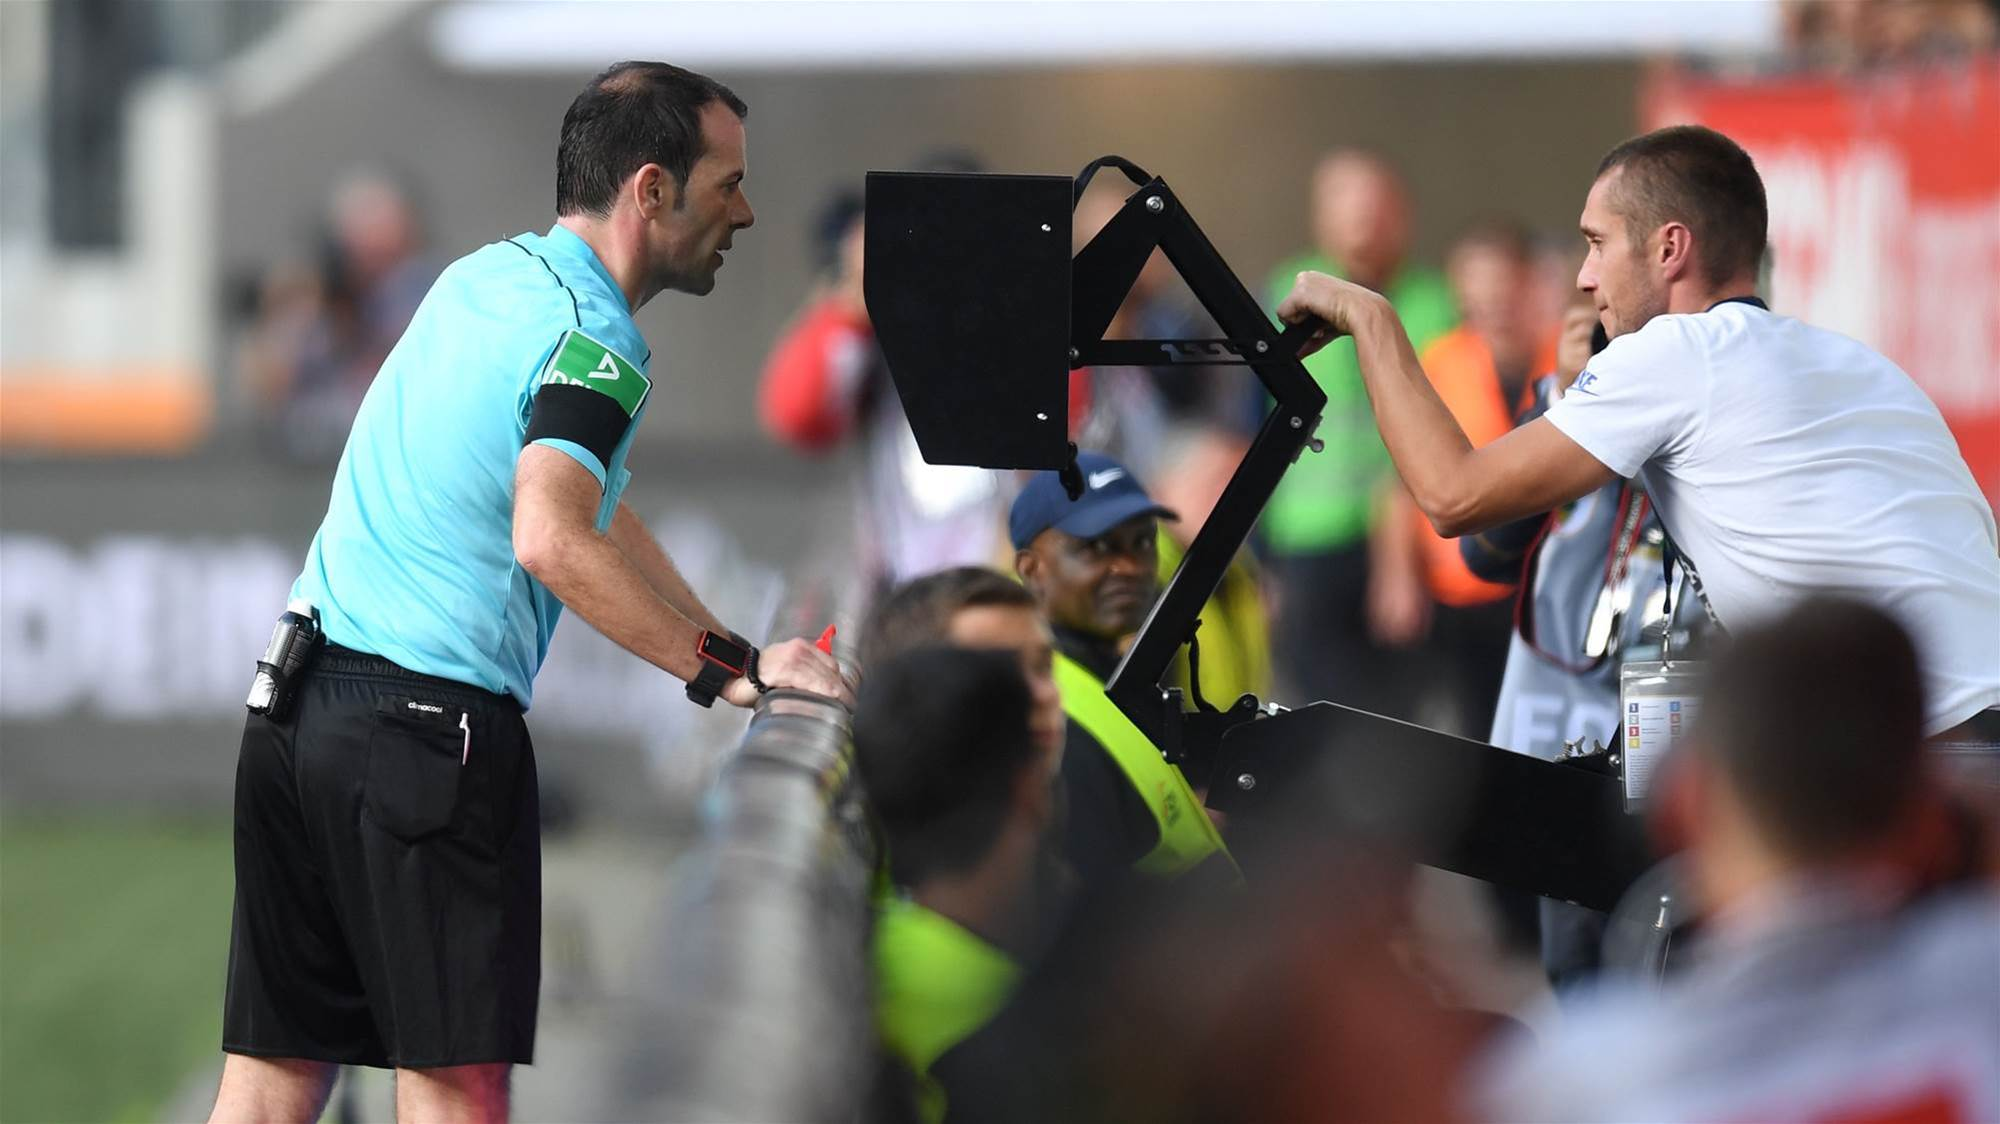 To VAR or not to VAR, that is the question